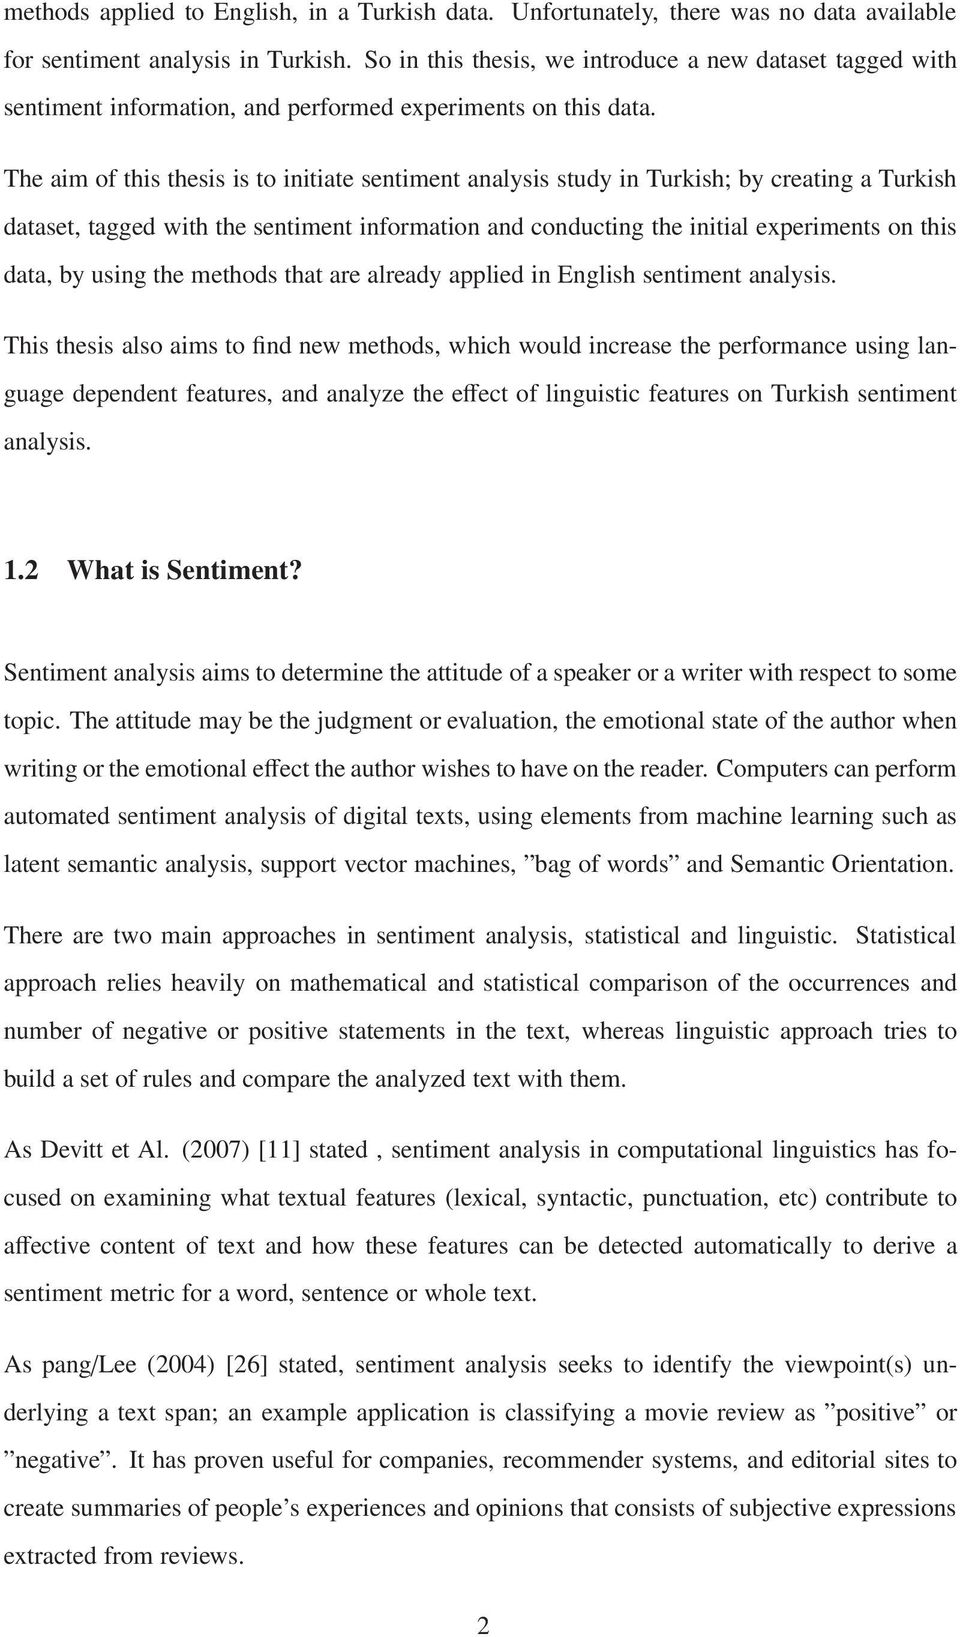 The aim of this thesis is to initiate sentiment analysis study in Turkish; by creating a Turkish dataset, tagged with the sentiment information and conducting the initial experiments on this data, by